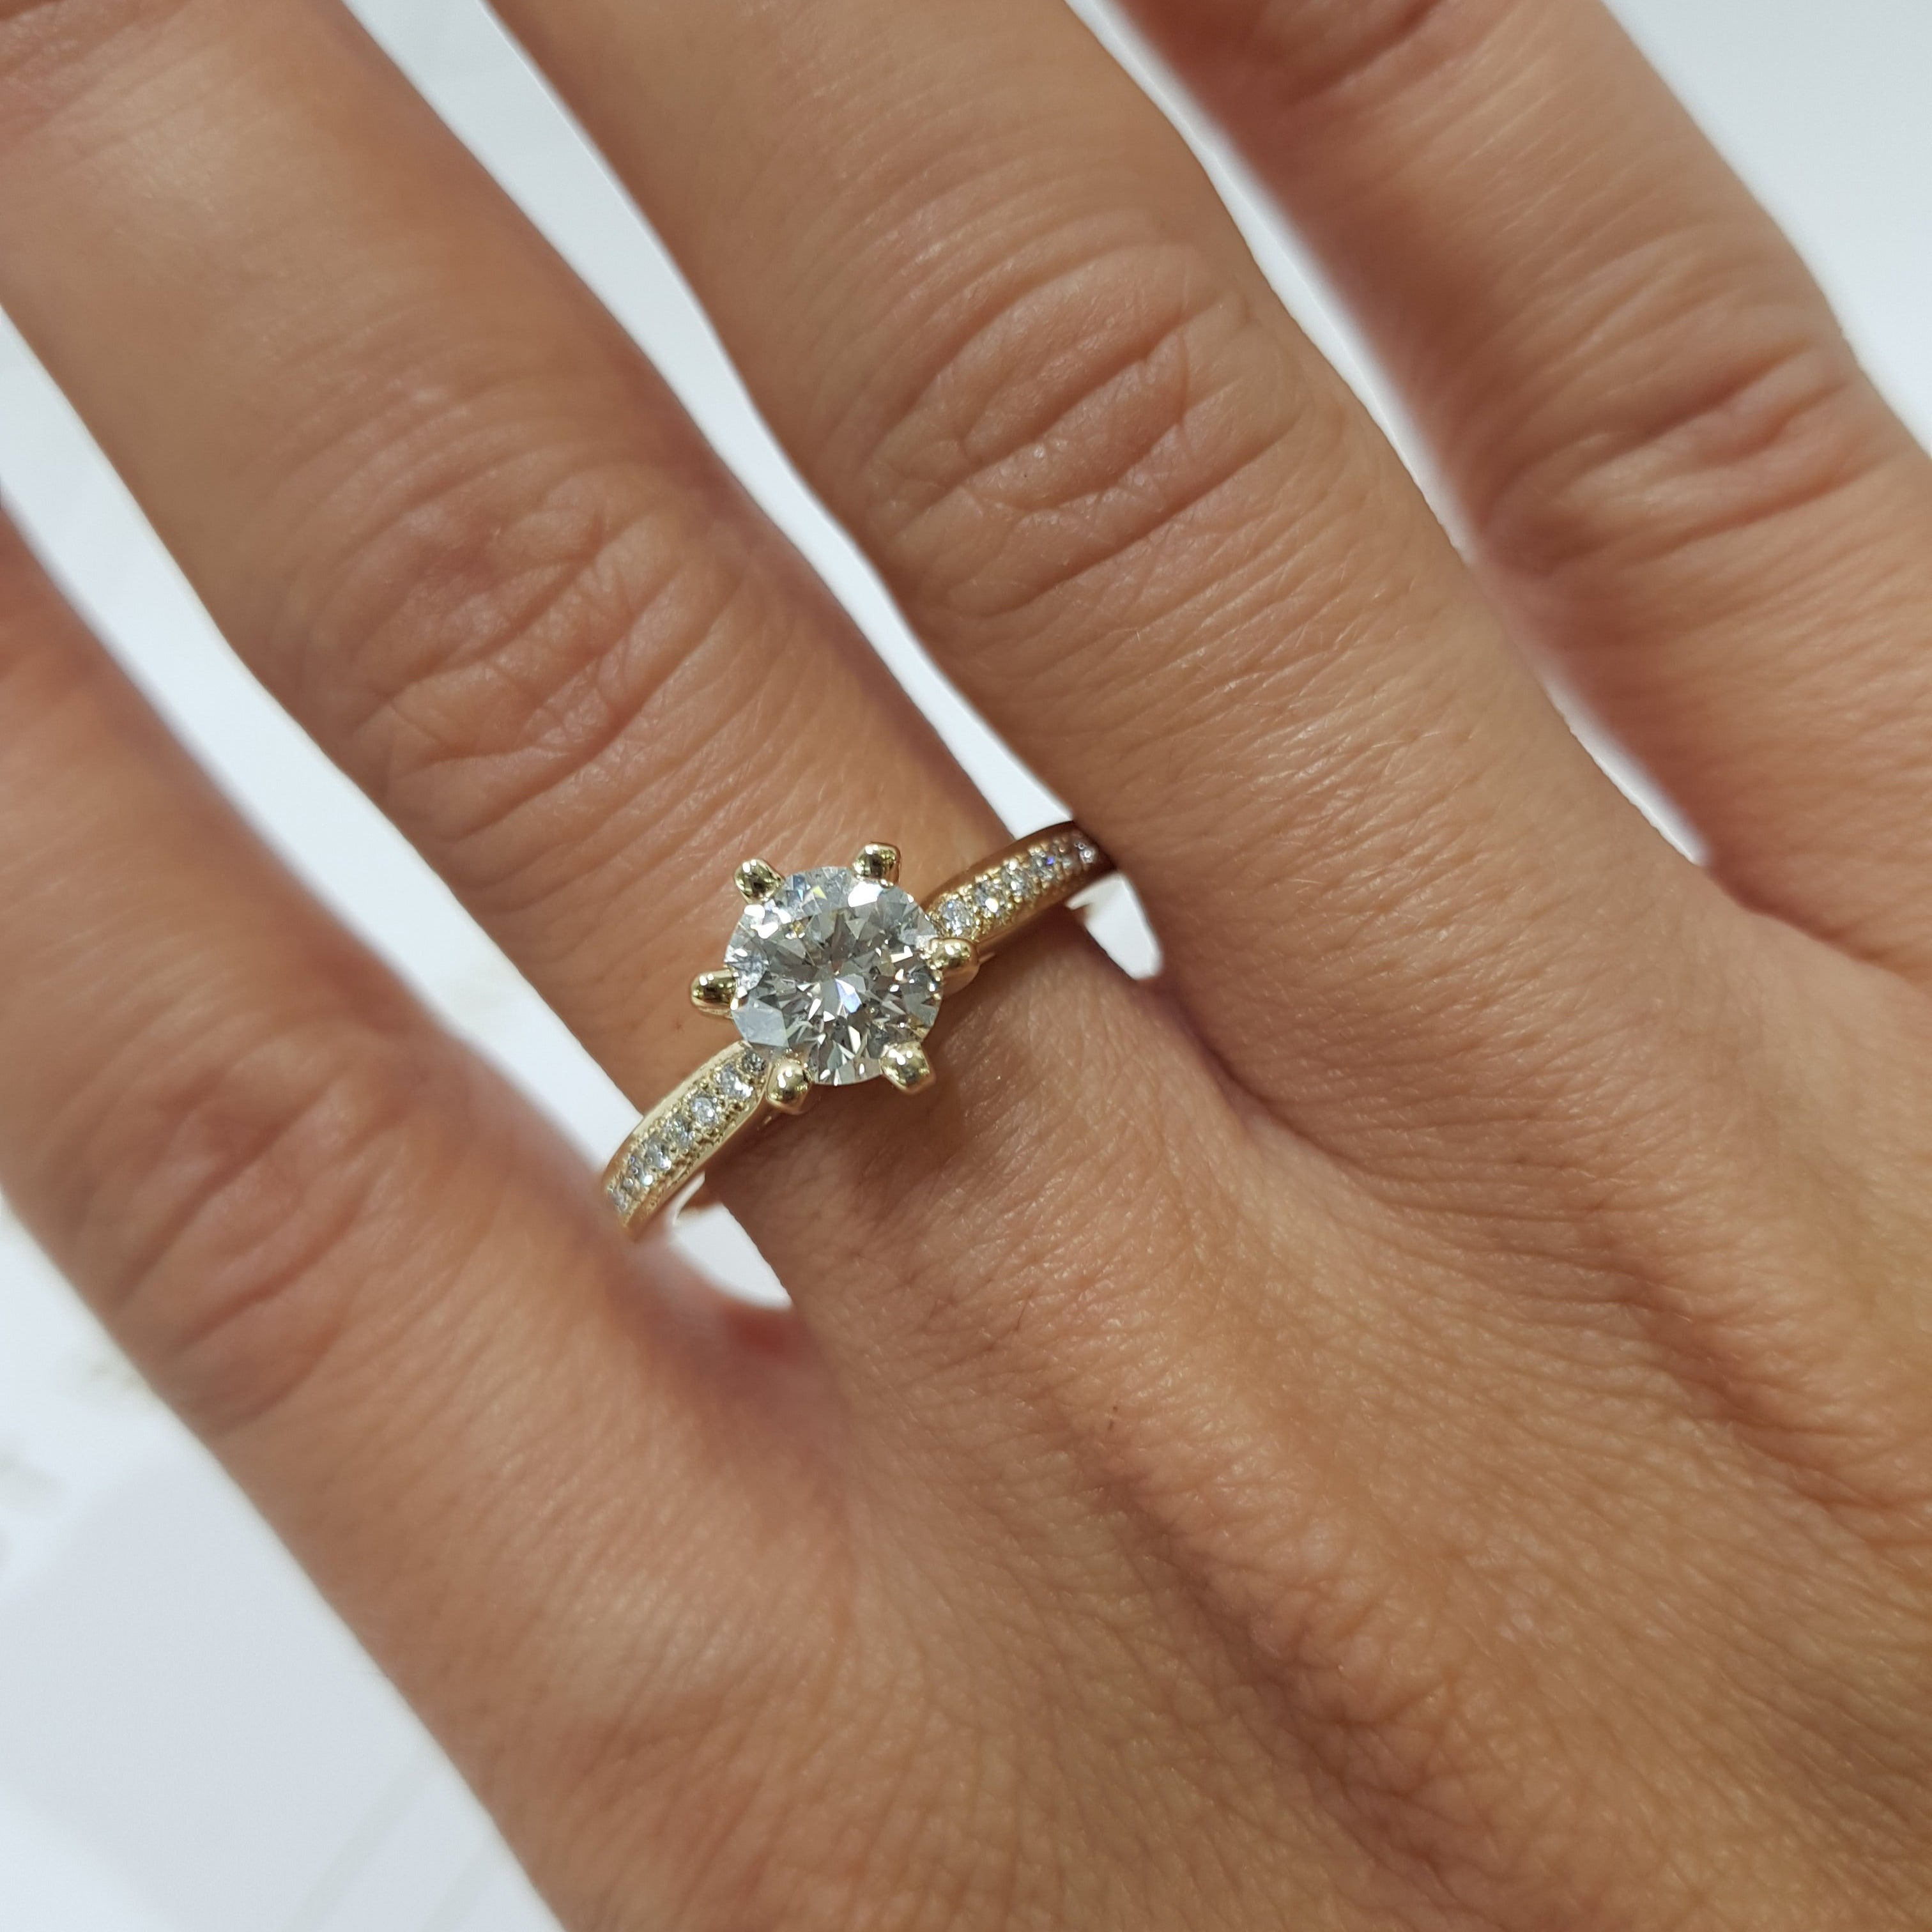 The Talia Engagement Ring - 1.2 CARAT F SI1 ROUND BRILLIANT 14K YELLOW GOLD DIAMOND RING #J99983